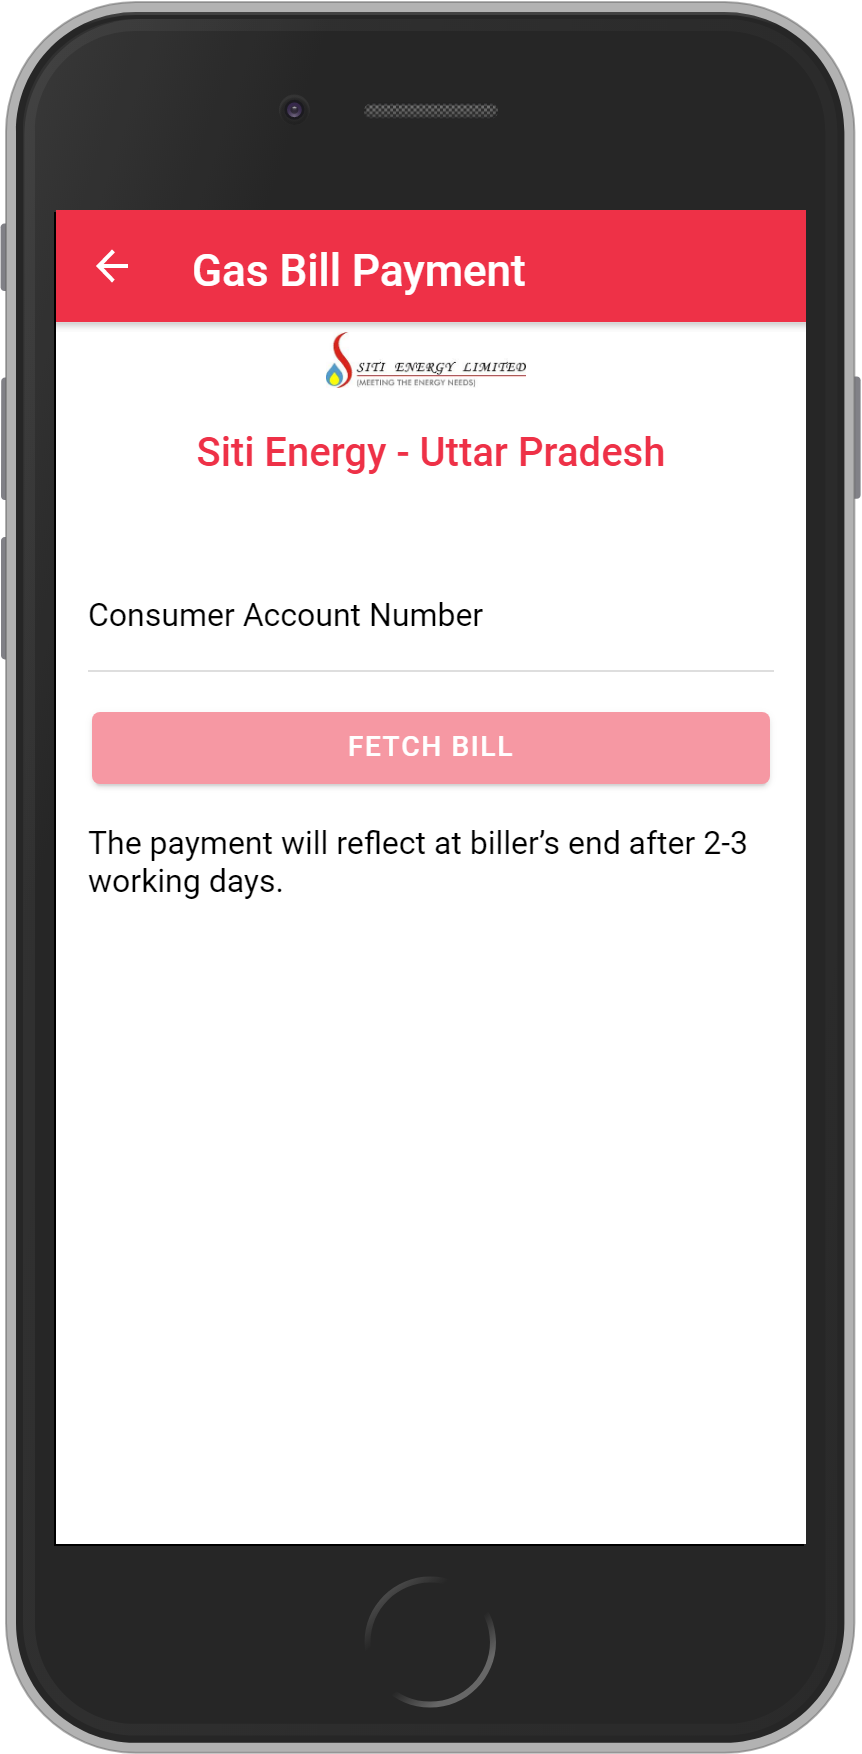 Get UNLIMITED <b>0.1%</b> CASHBACK on Siti Energy – Uttar Pradesh Bill Payment.